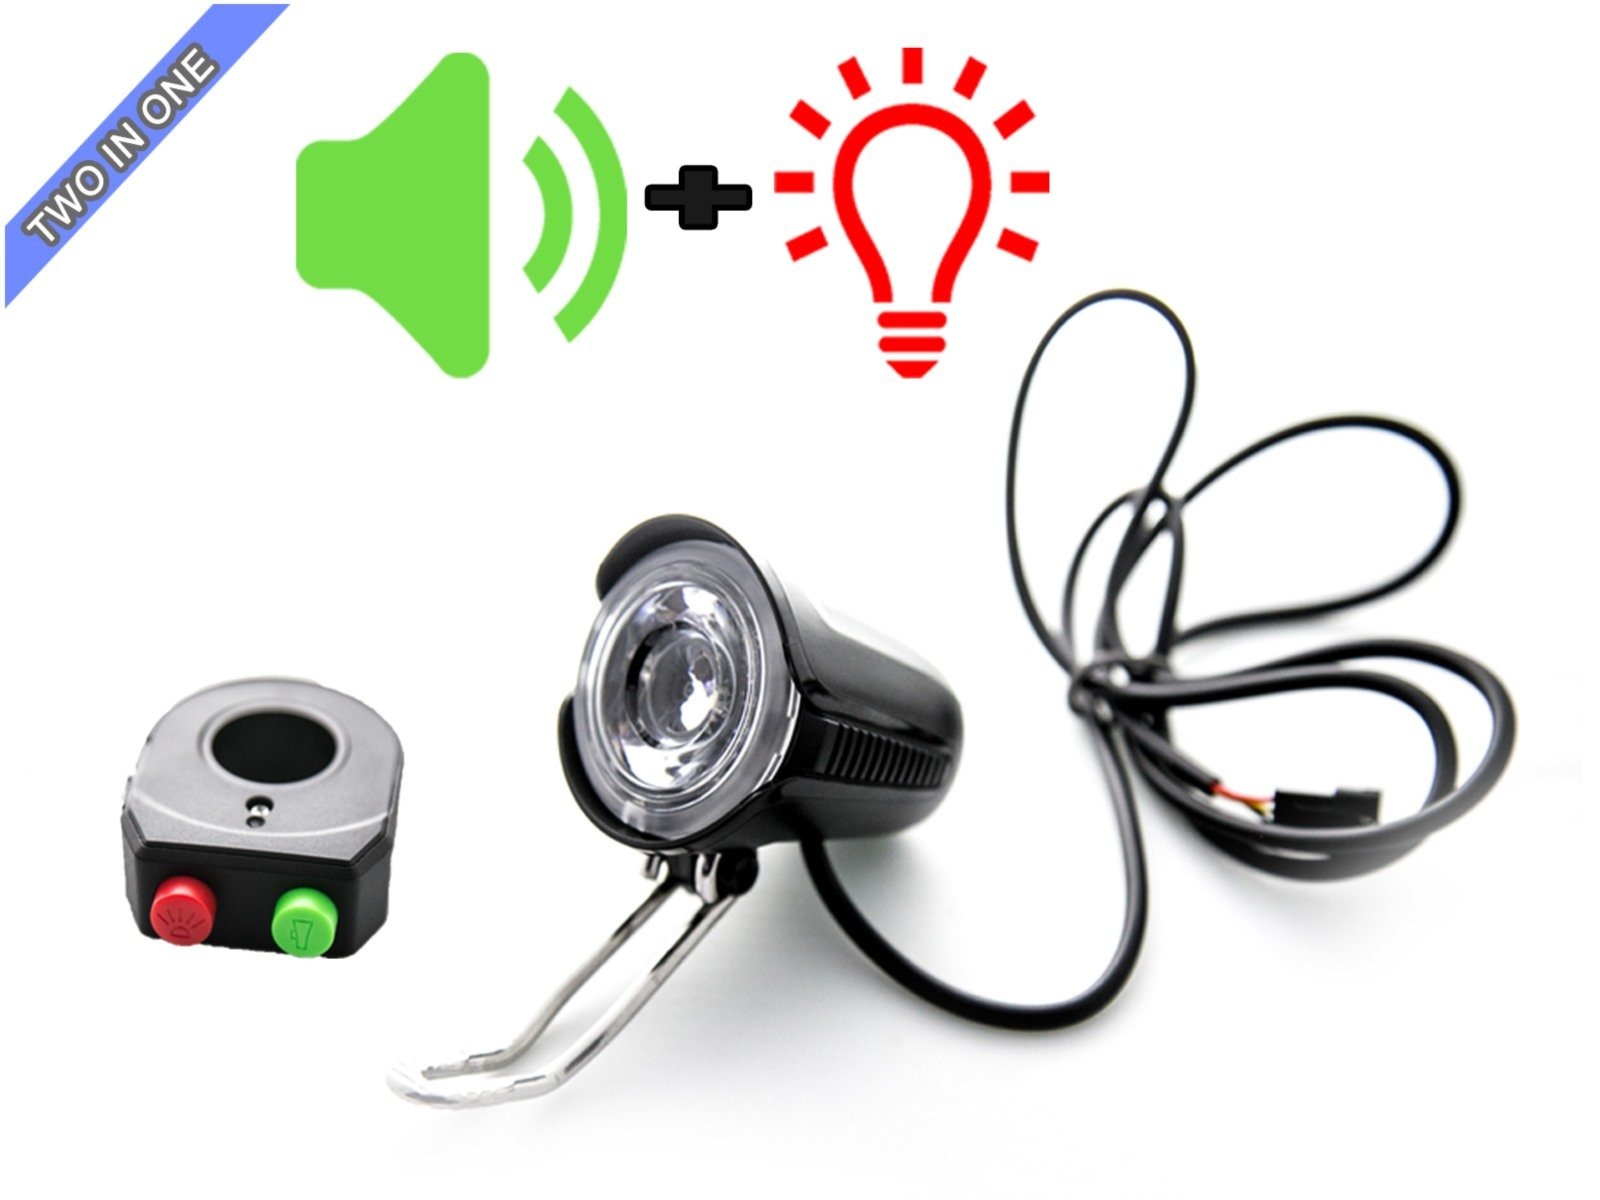 Electric Bicycle 2 in 1 Head Light & Electric Horn For Electric Bike EBikes And Electric Scooter V36